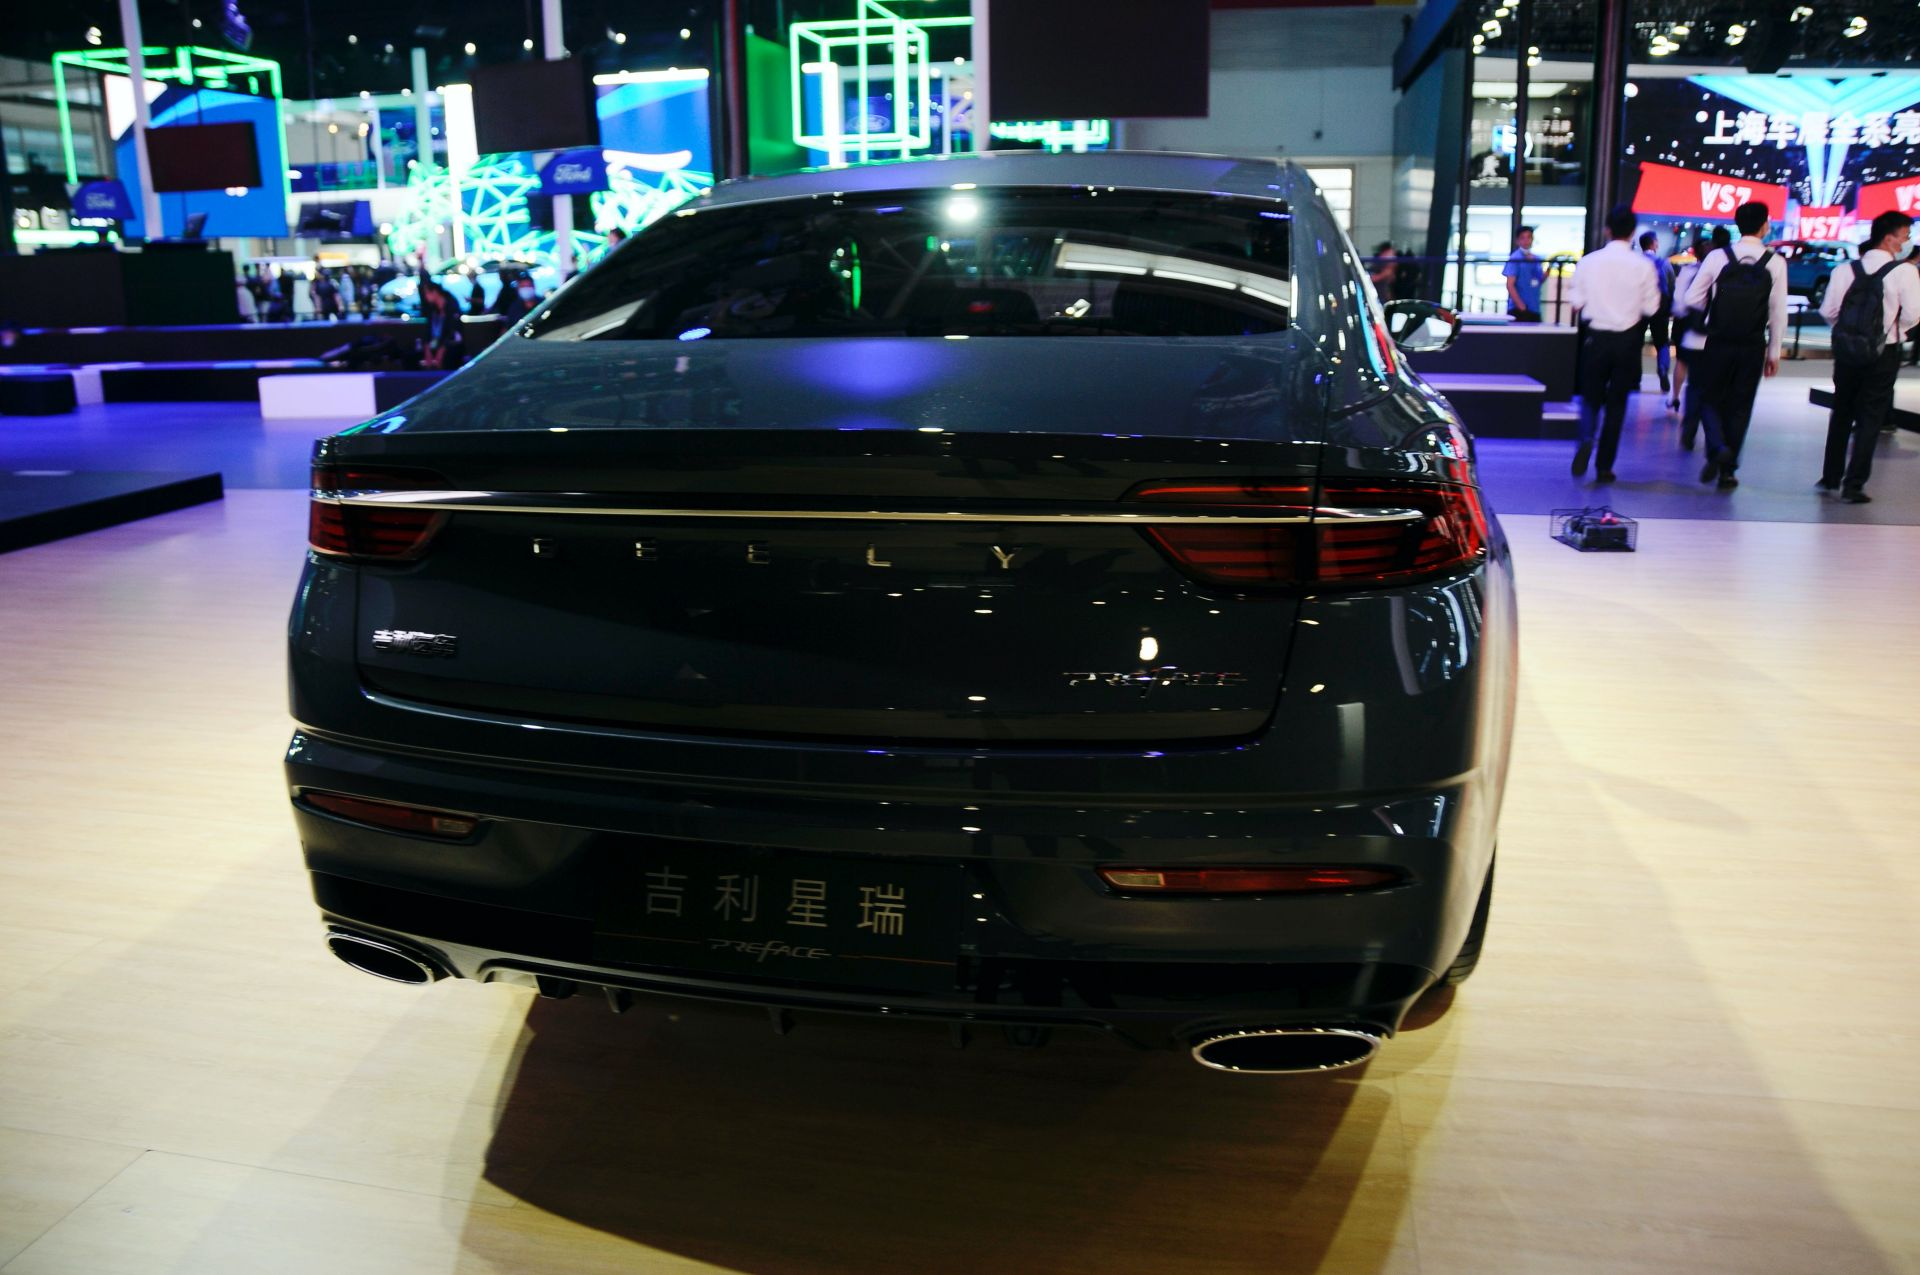 2021-Geely-Preface-aka-Xing-Rui-at-the-2020-Beijing-Auto-Show-7.jpg